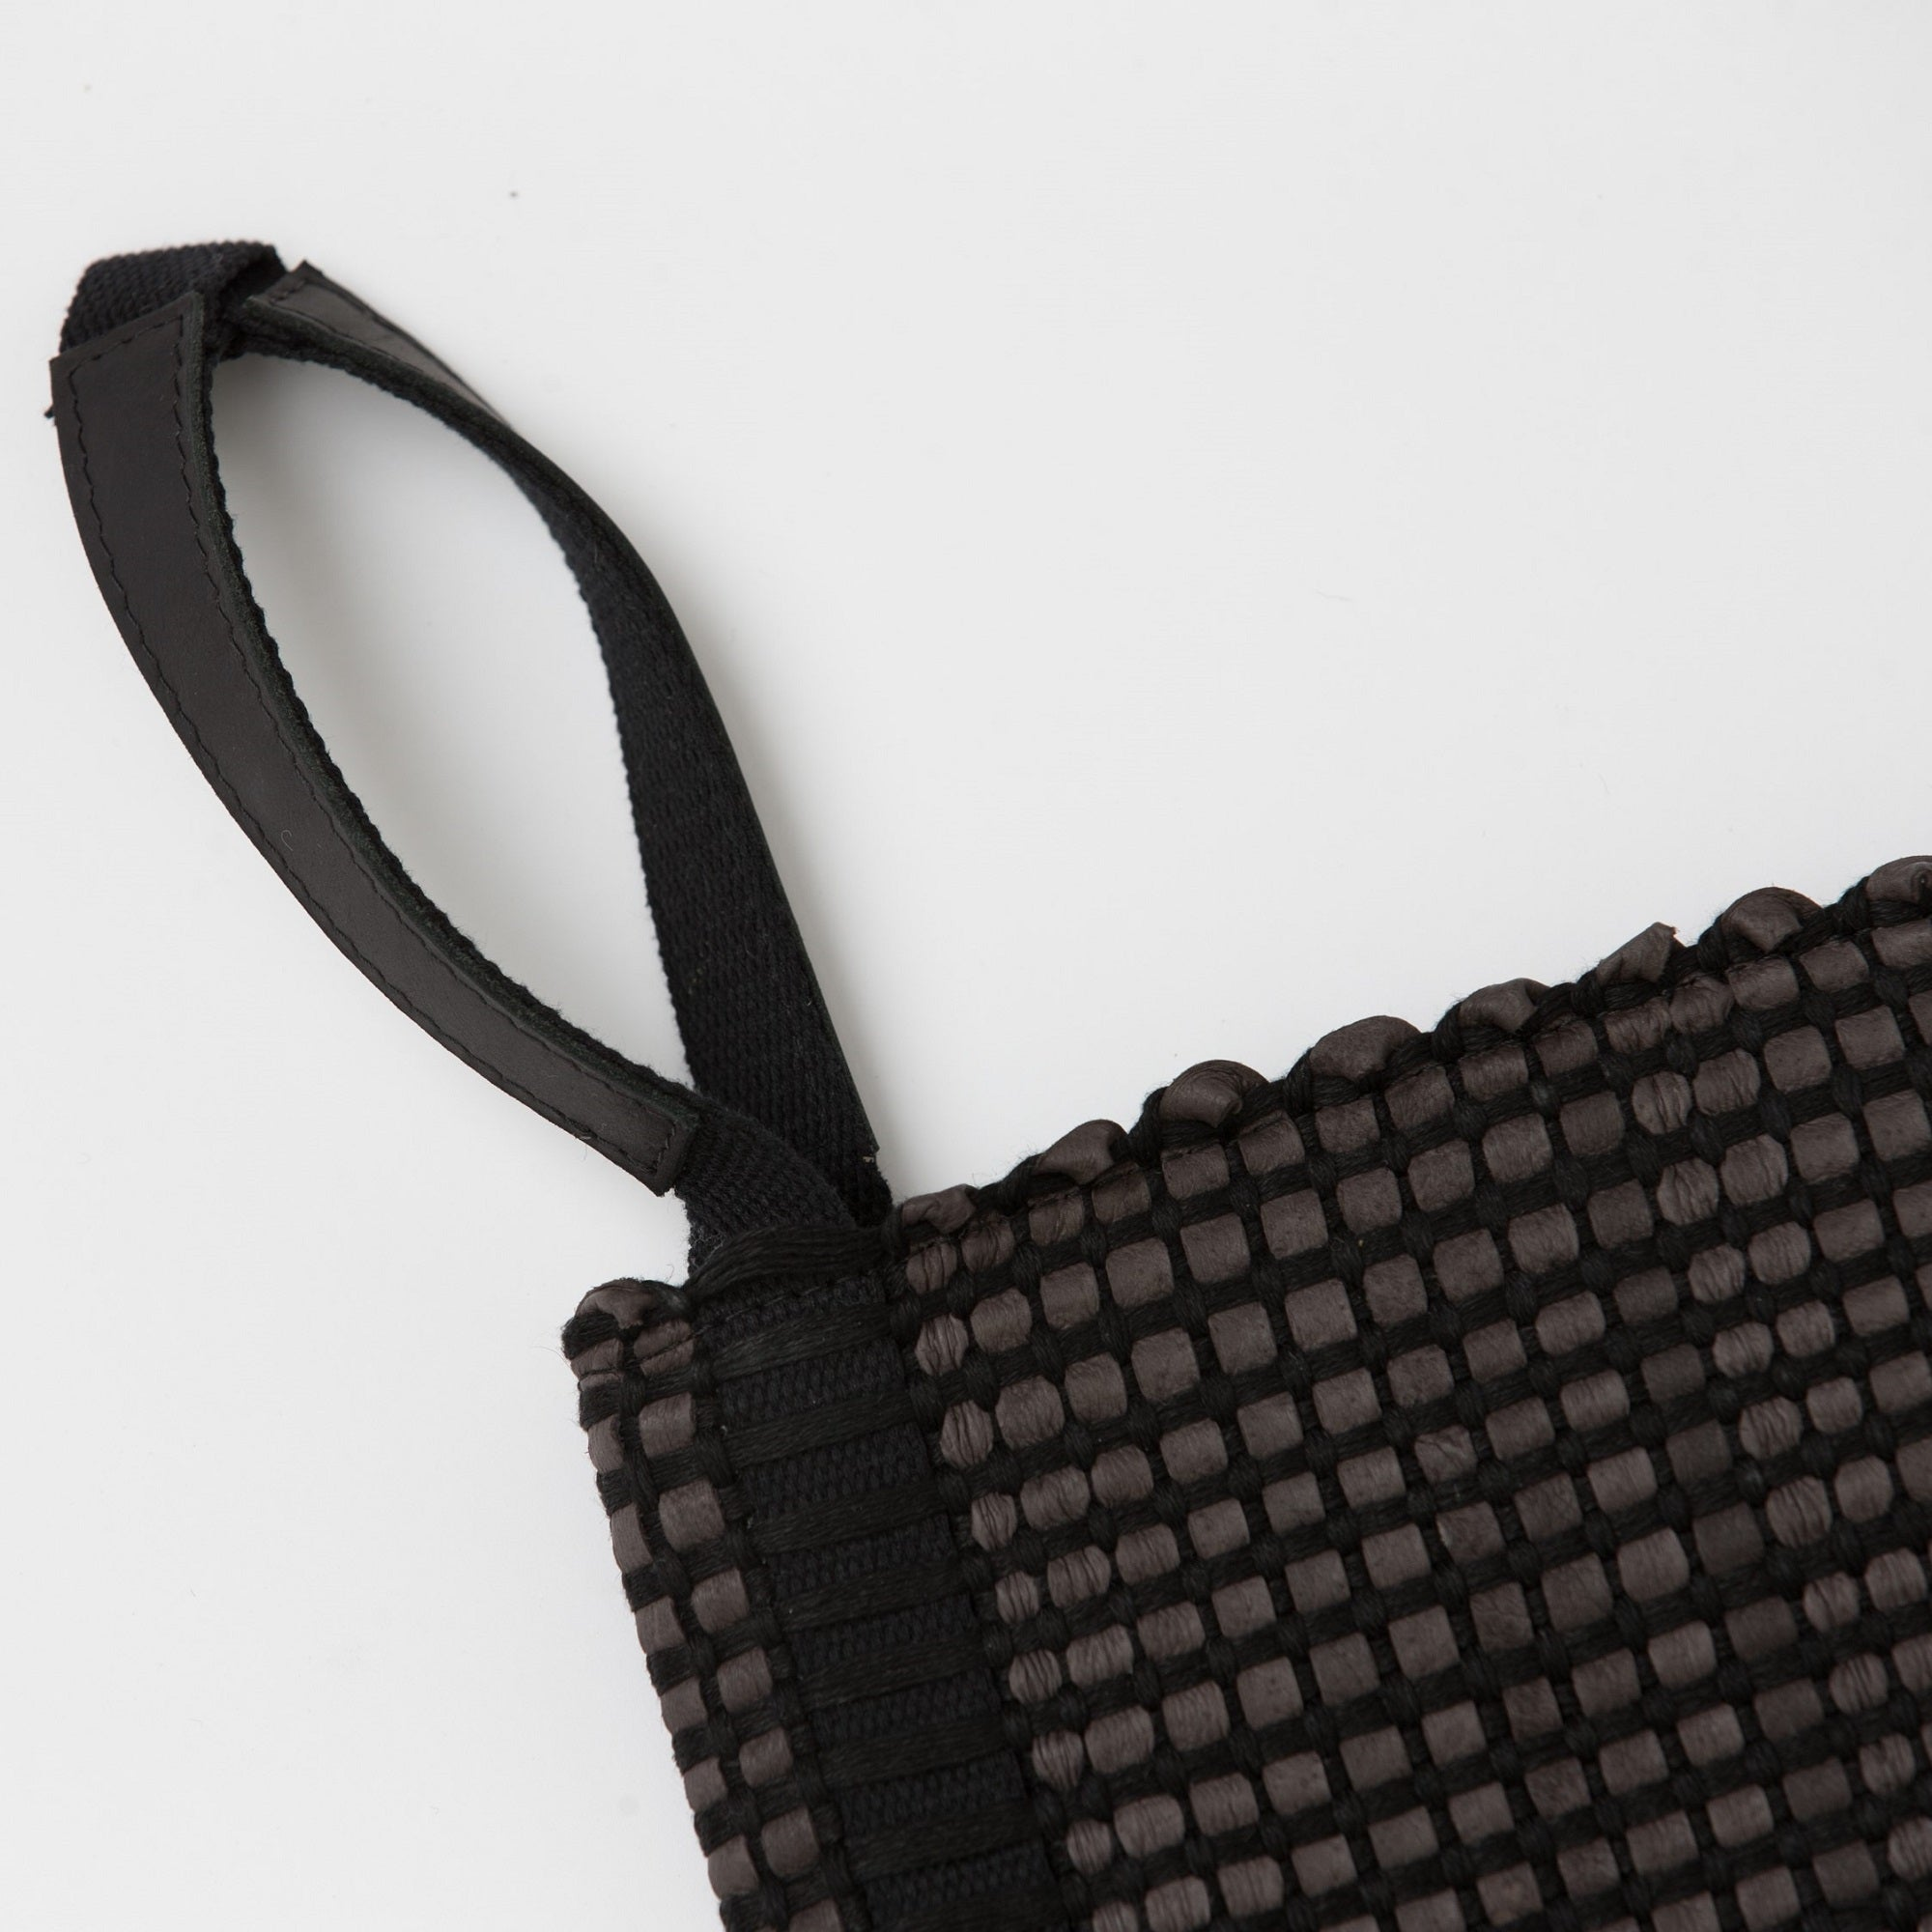 Handwoven Clutch Bag AUSTĖ #12 choco leather and linen